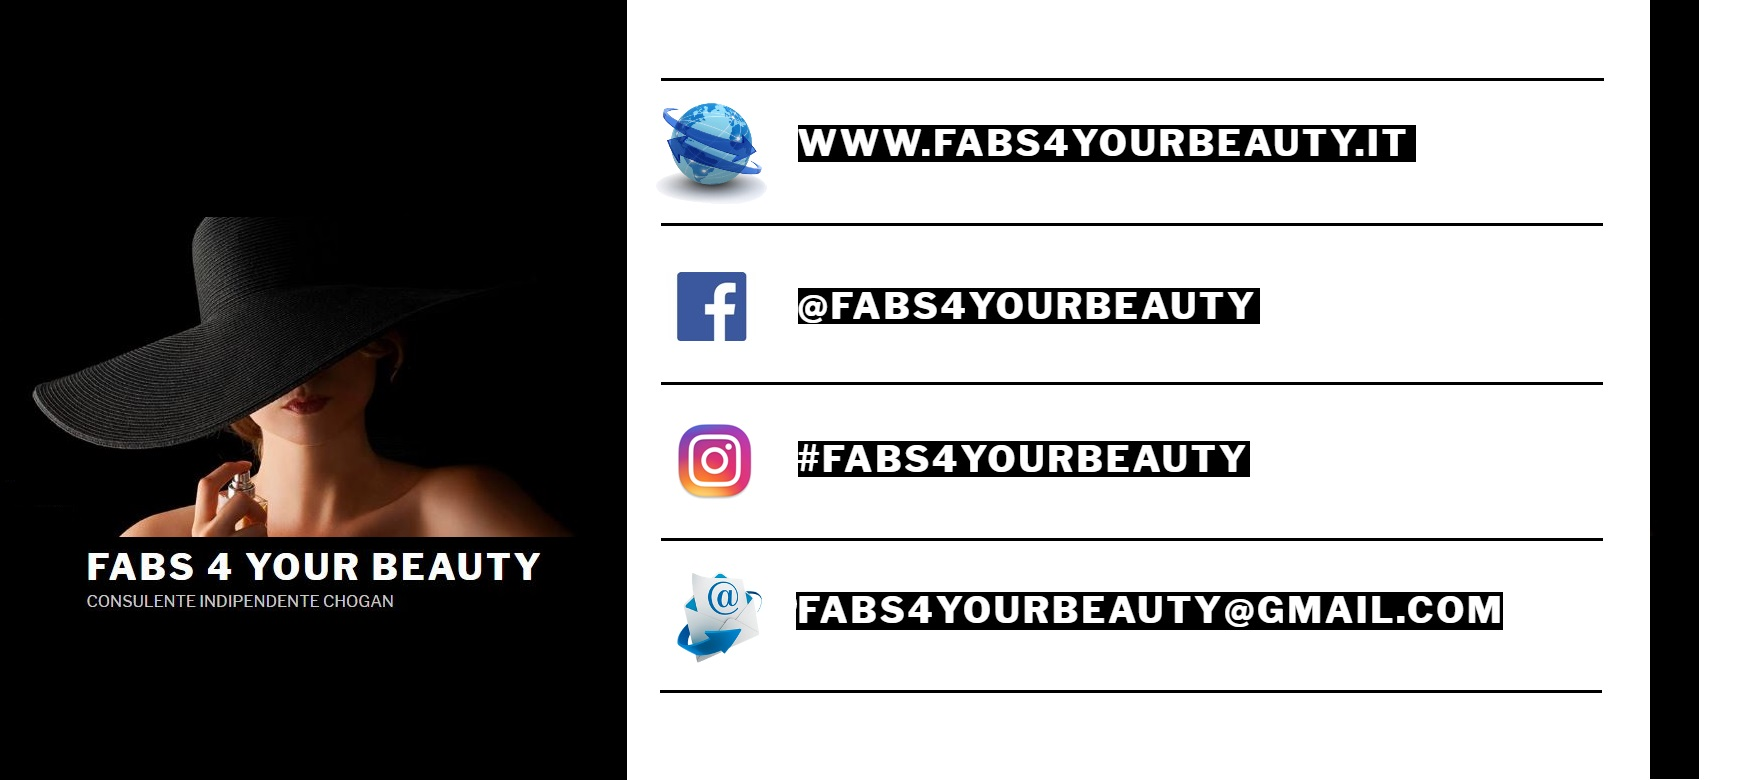 Contatti FABS 4 YOUR BEAUTY